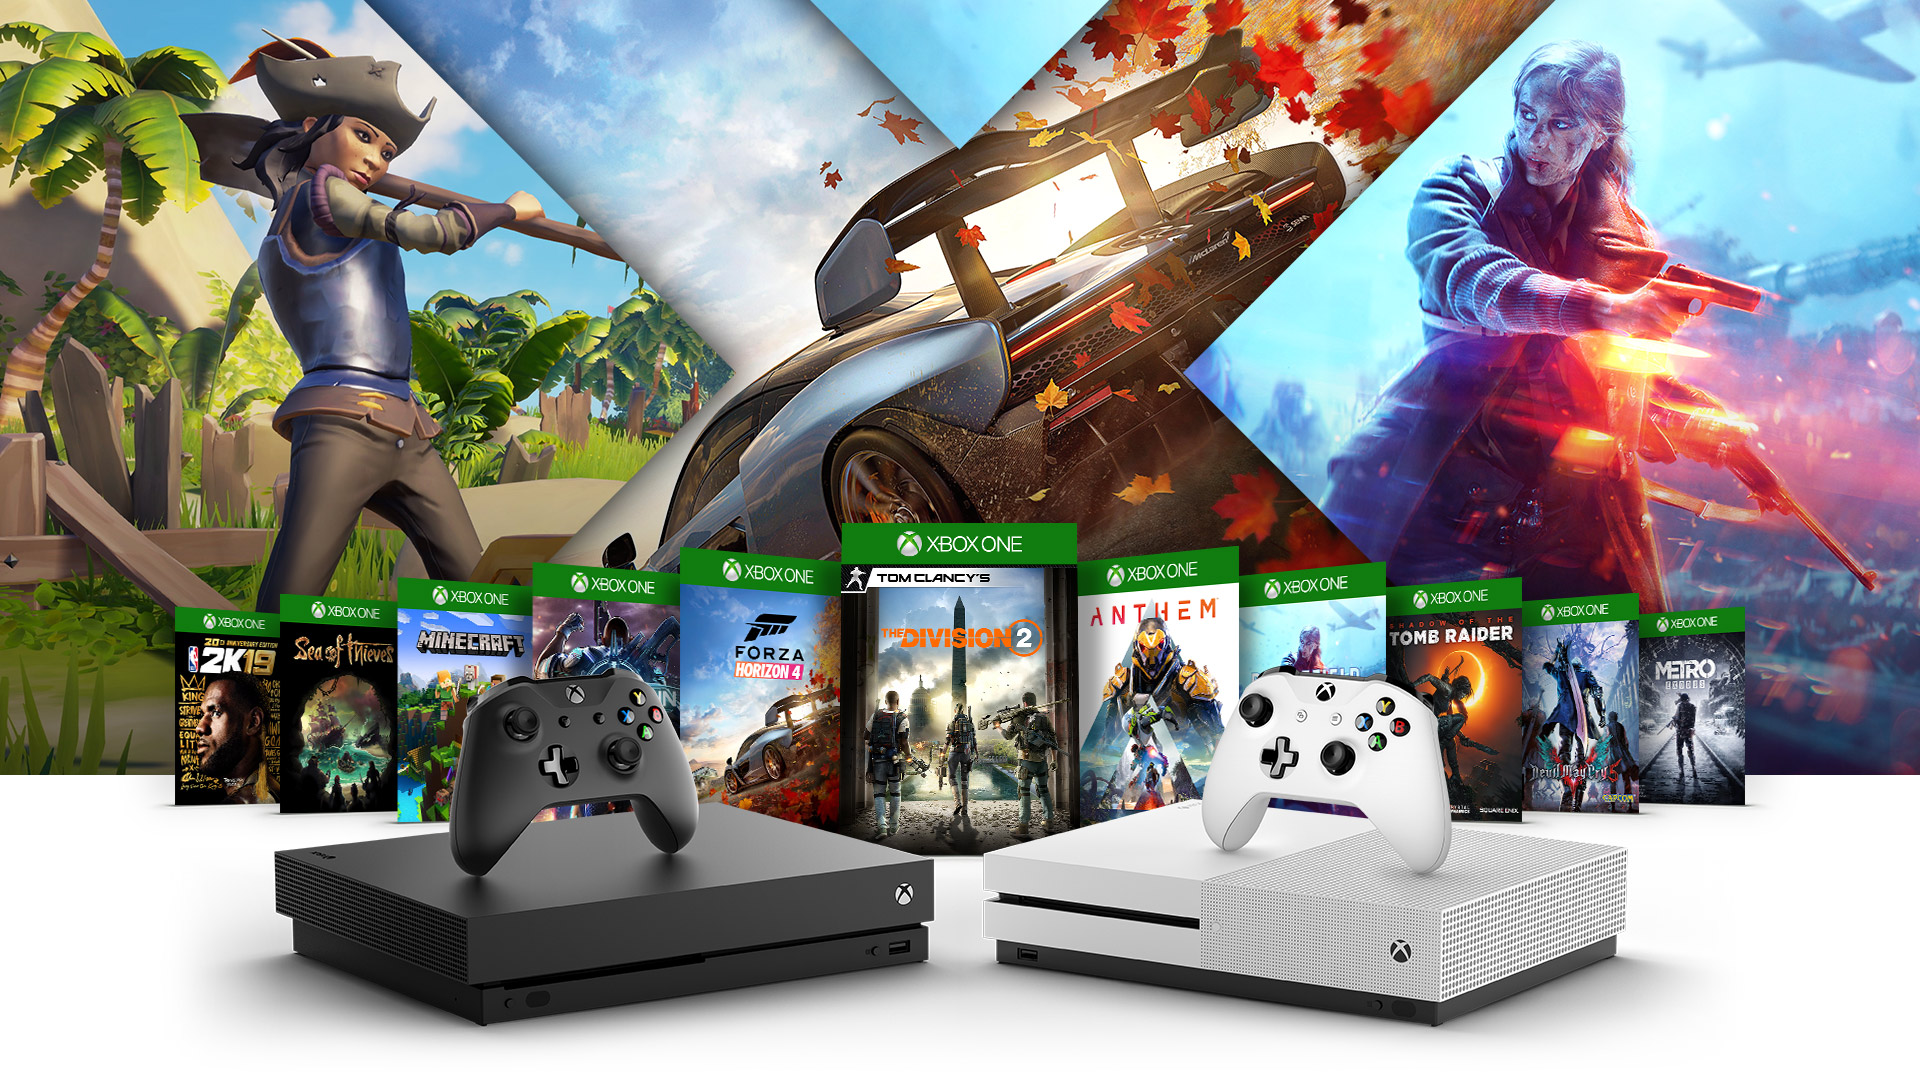 Vista lateral de las consolas Xbox One X, Xbox One S y Xbox One S All-Digital Edition rodeadas de las cajas de Crackdown 3, Sea of Thieves, Minecraft, Madden 19, 2K19, Forza Horizon 4, Fallout 76, Battlefield Five, Shadow of the Tomb Raider, PlayersUnknown Battlegrounds y State of Decay 2